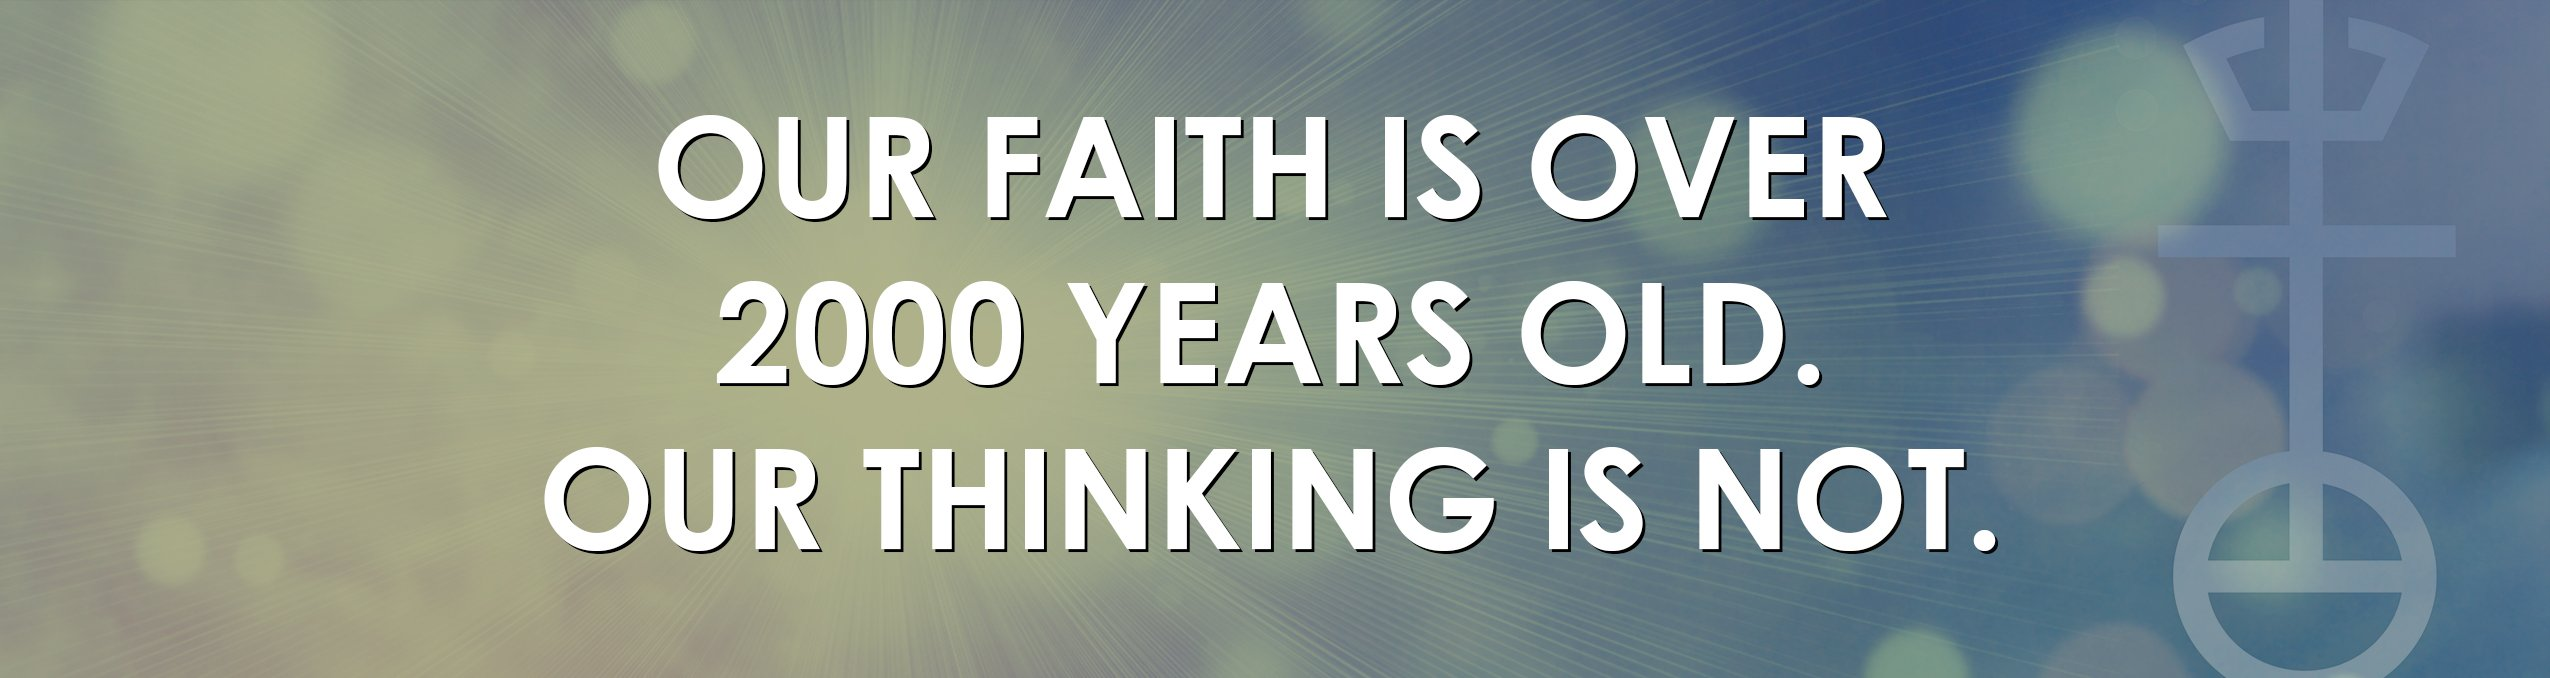 Our faith is over 2000 years old. Our thinking is not.